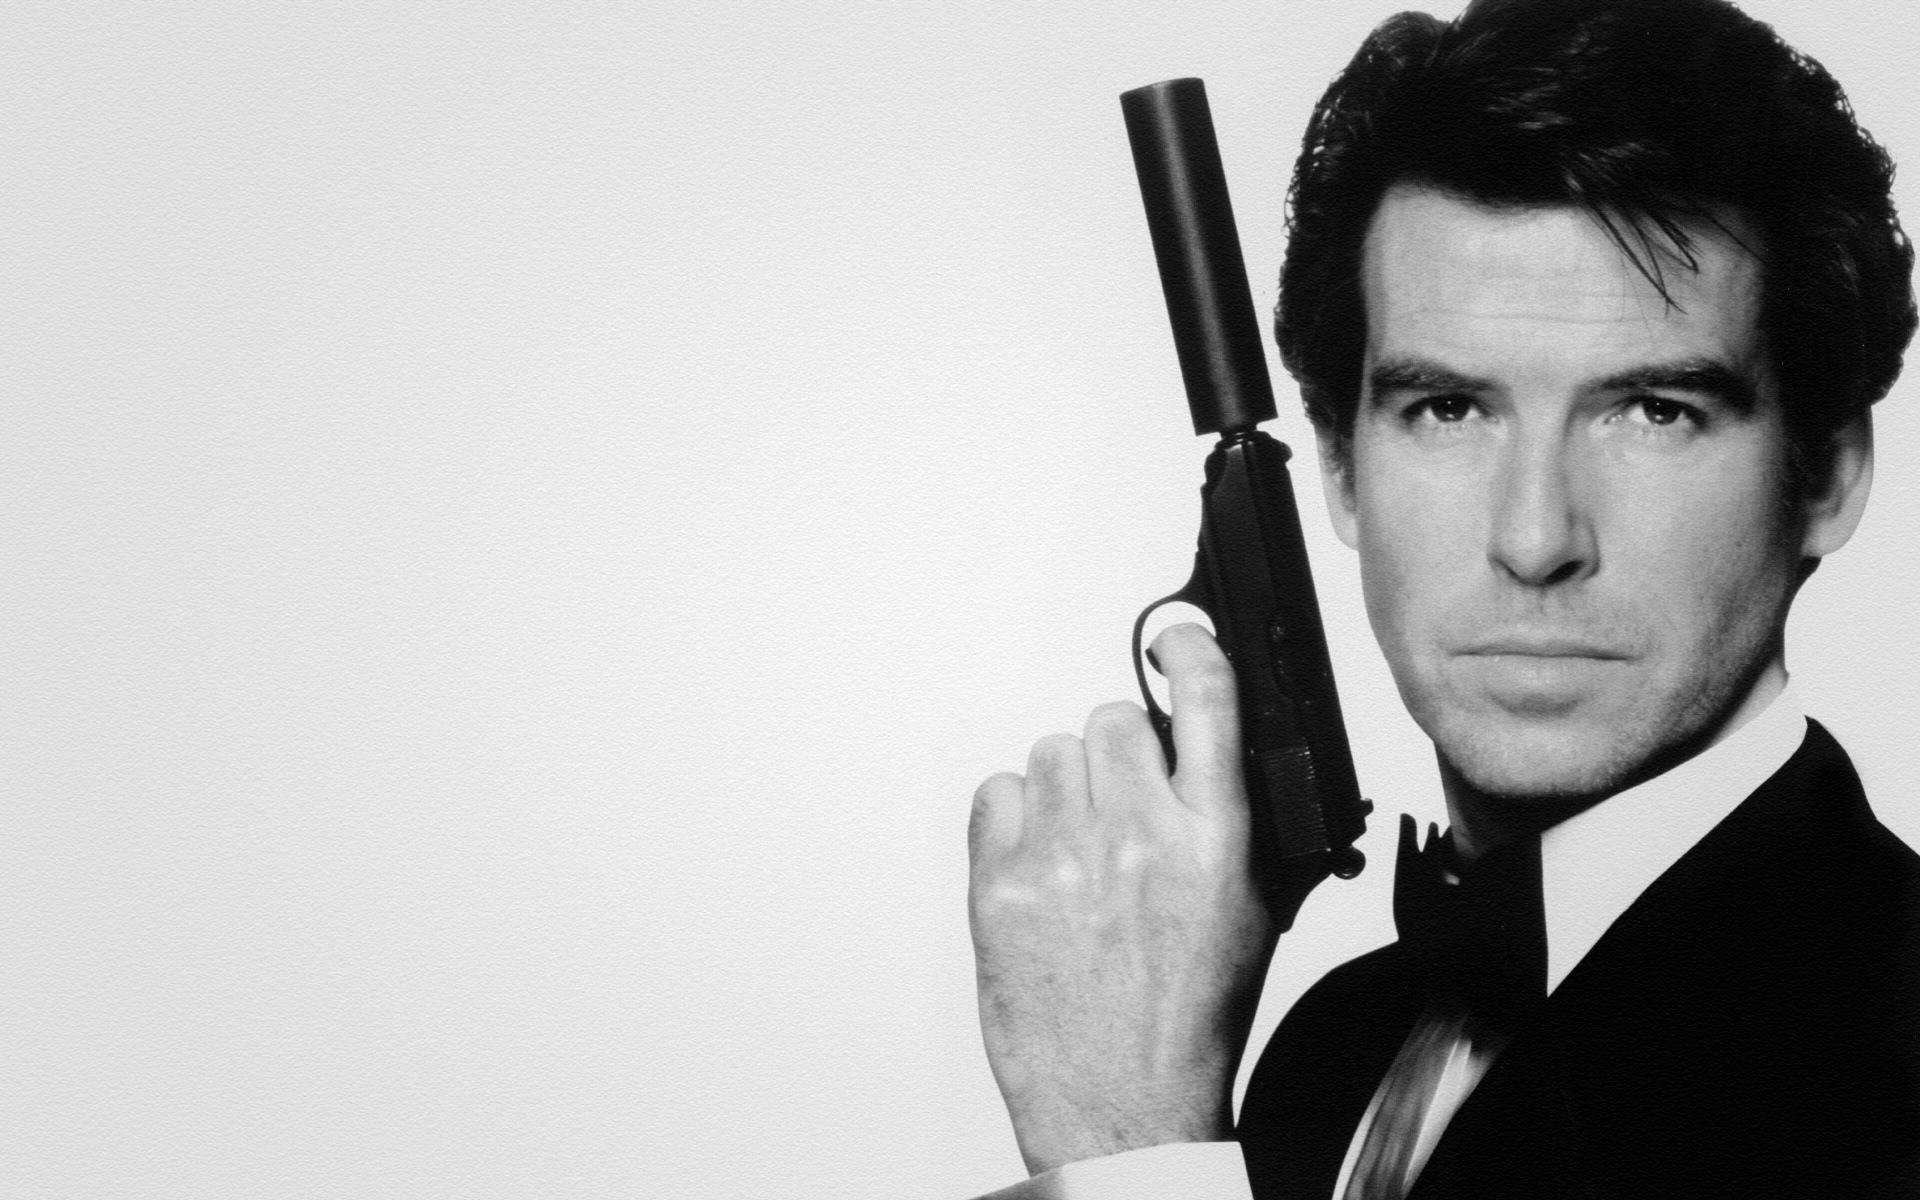 Pierce Brosnan Weighs In On Who The Next James Bond Will Be pierce brosnan pierce brosnan pistol 007 james bond james bond